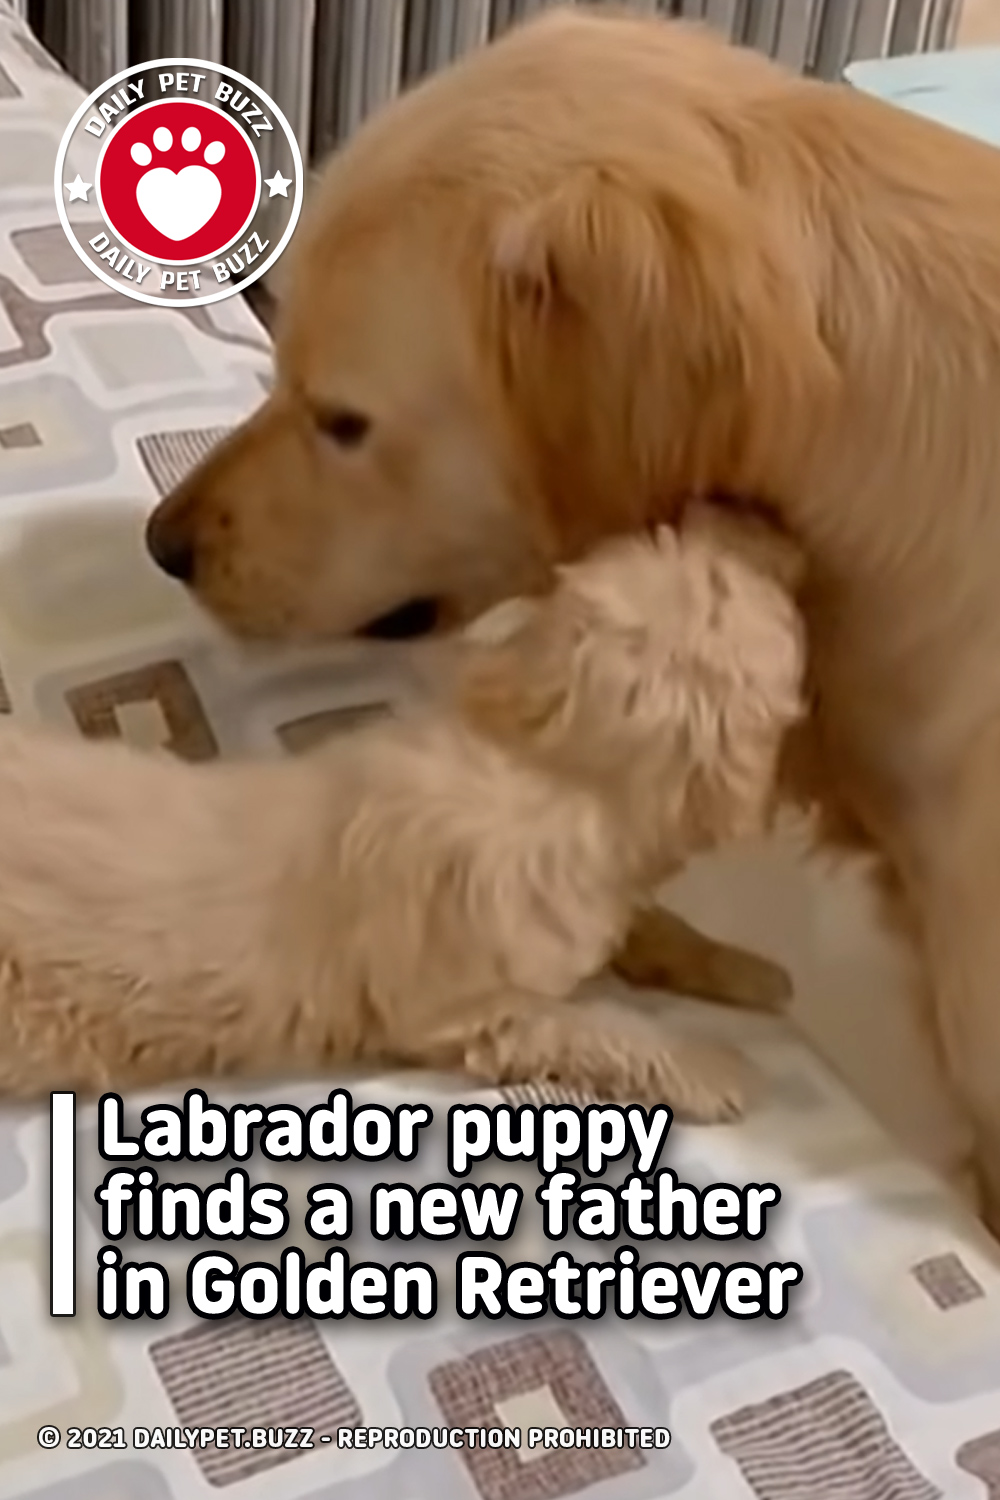 Labrador puppy finds a new father in Golden Retriever